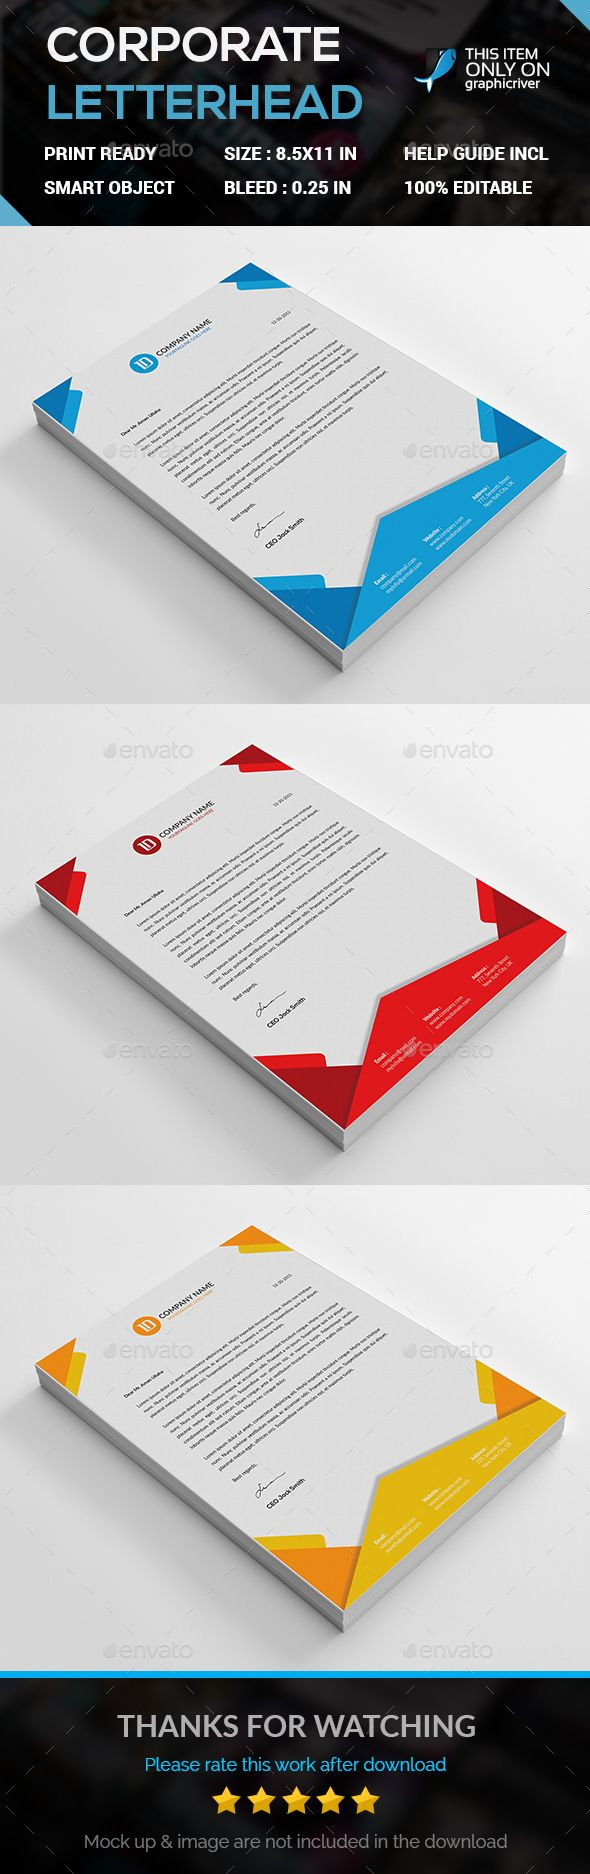 Corporate #Letterhead Template - Stationery Print #Templates Download here:  https://graphicriver.net/item/corporate-letterhead-template/14695988?ref=alena994